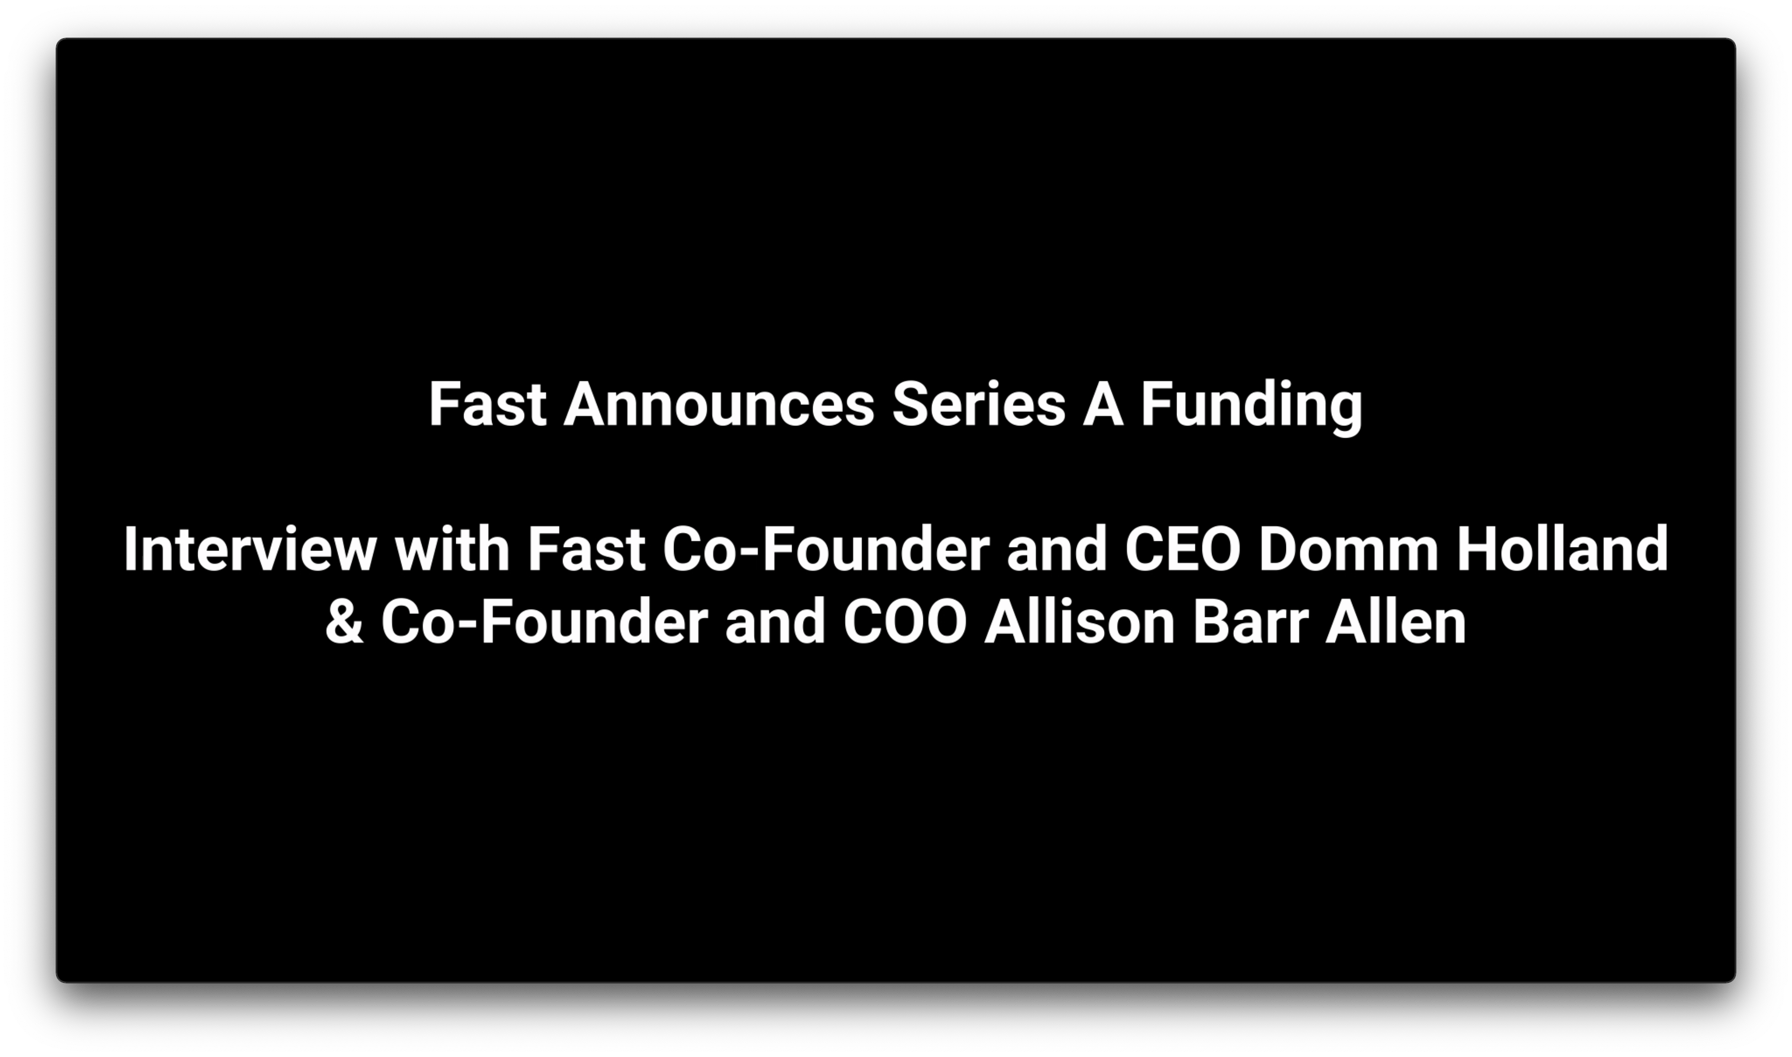 Fast Funding Announcement Series A - Together